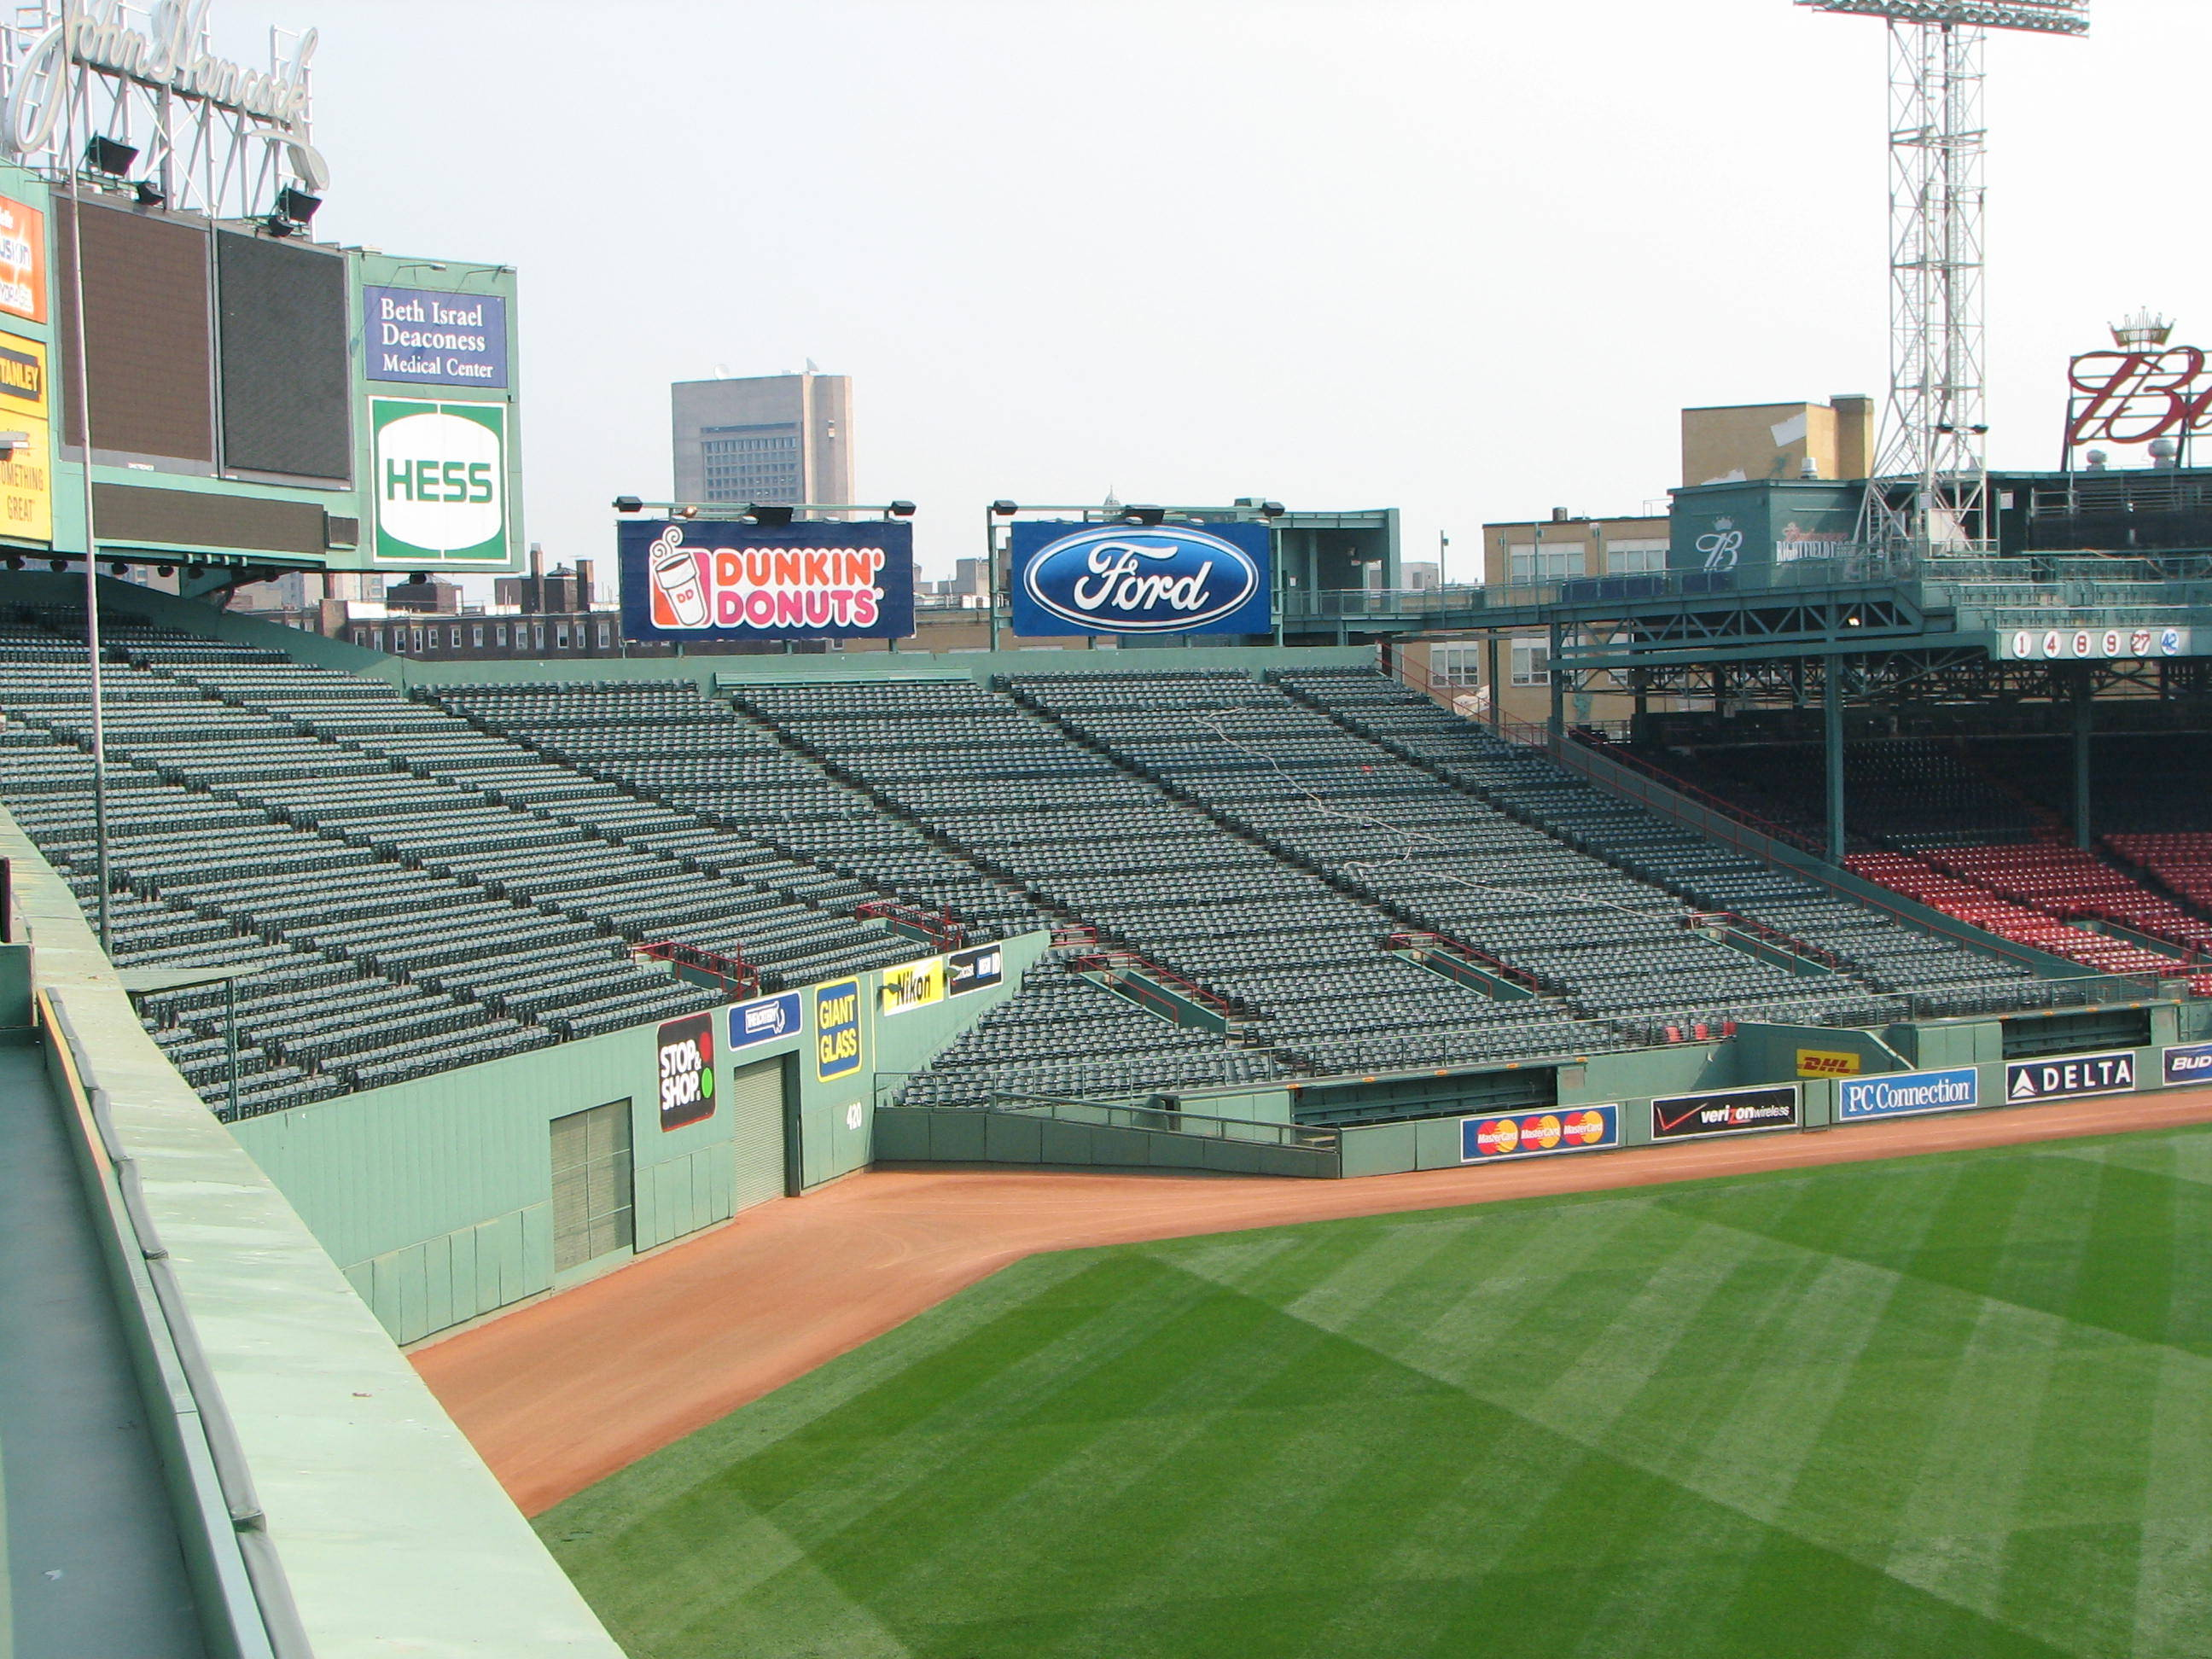 fenway park x essay including the senses on fenway park fenway park center field boston massachusetts usa